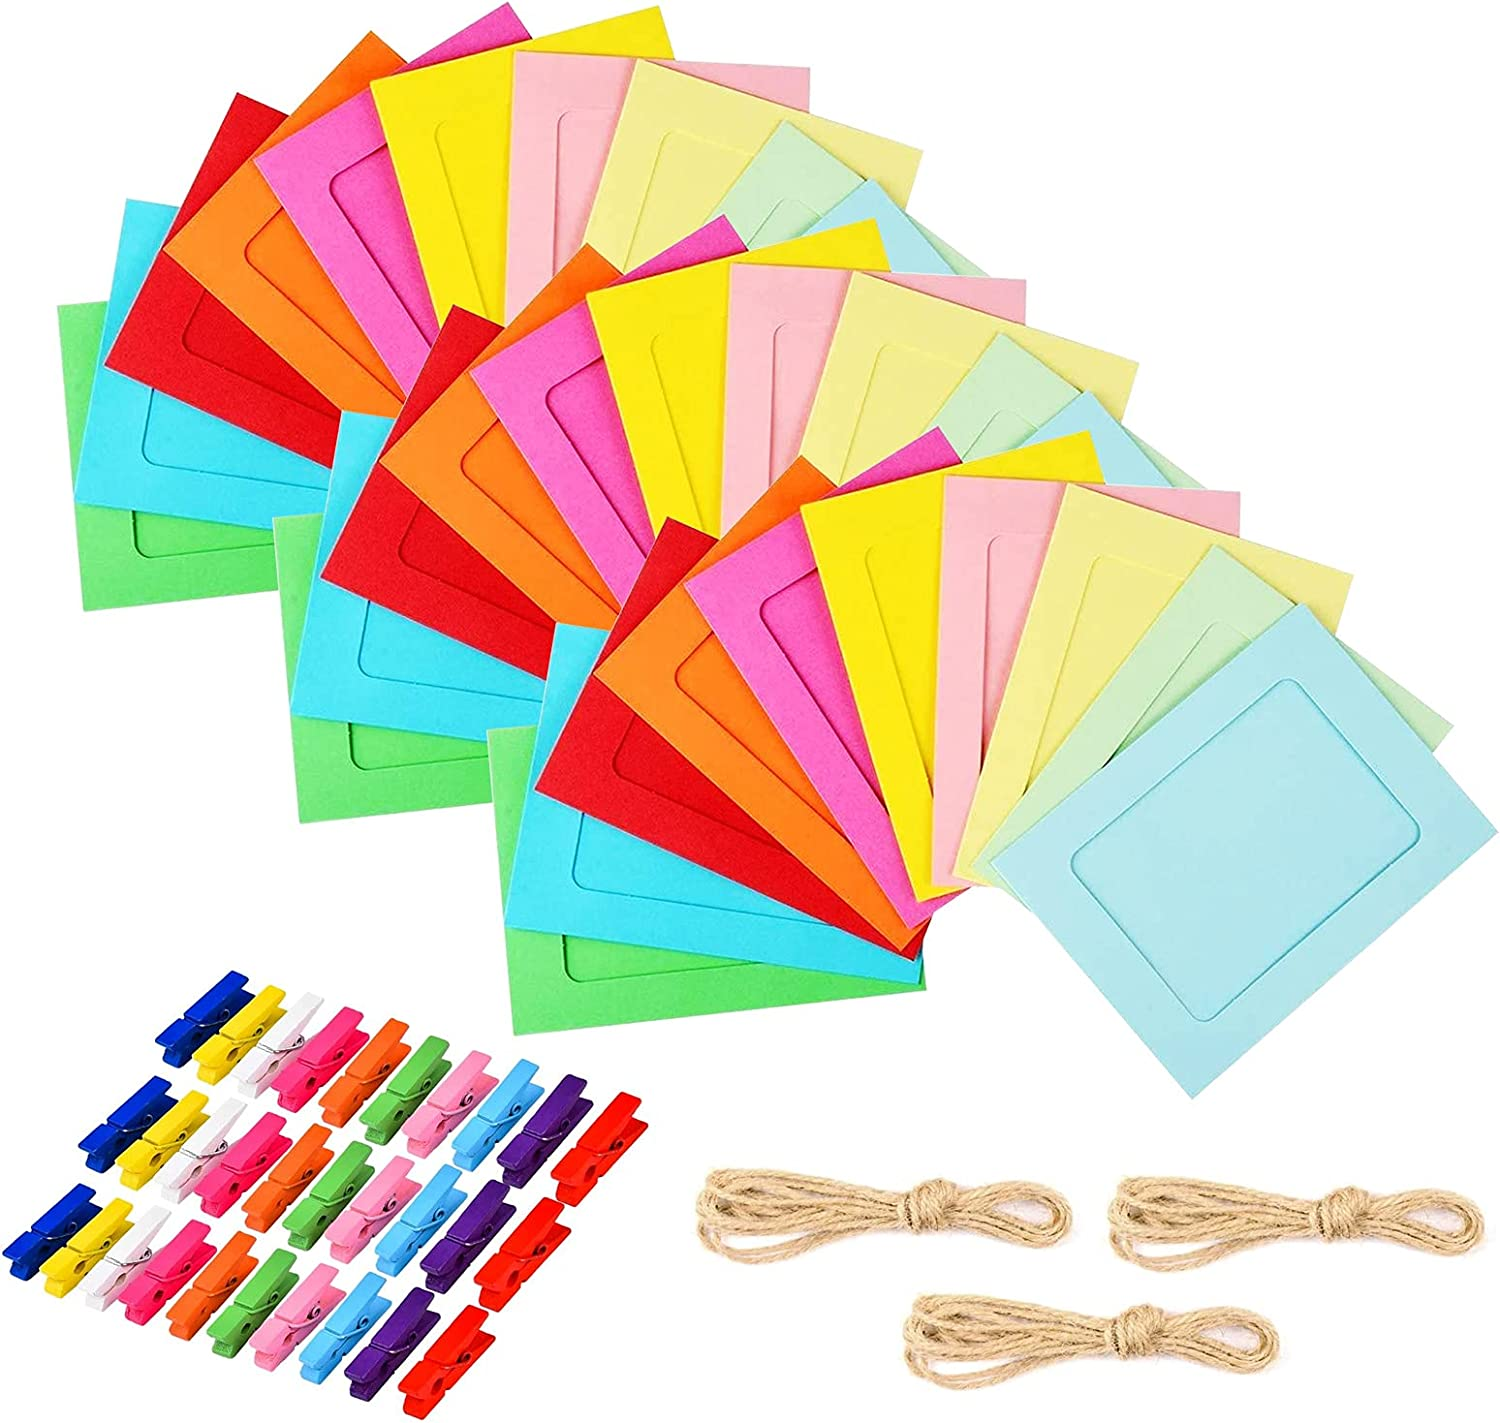 Paper Picture Frames, 30 PCS Colorful Paper Photo Frame 4x6in DIY Cardboard Photo Frames Multi Color Clothespins Hanging Photo Display Frames with 3 Ropes for Home, College, Office